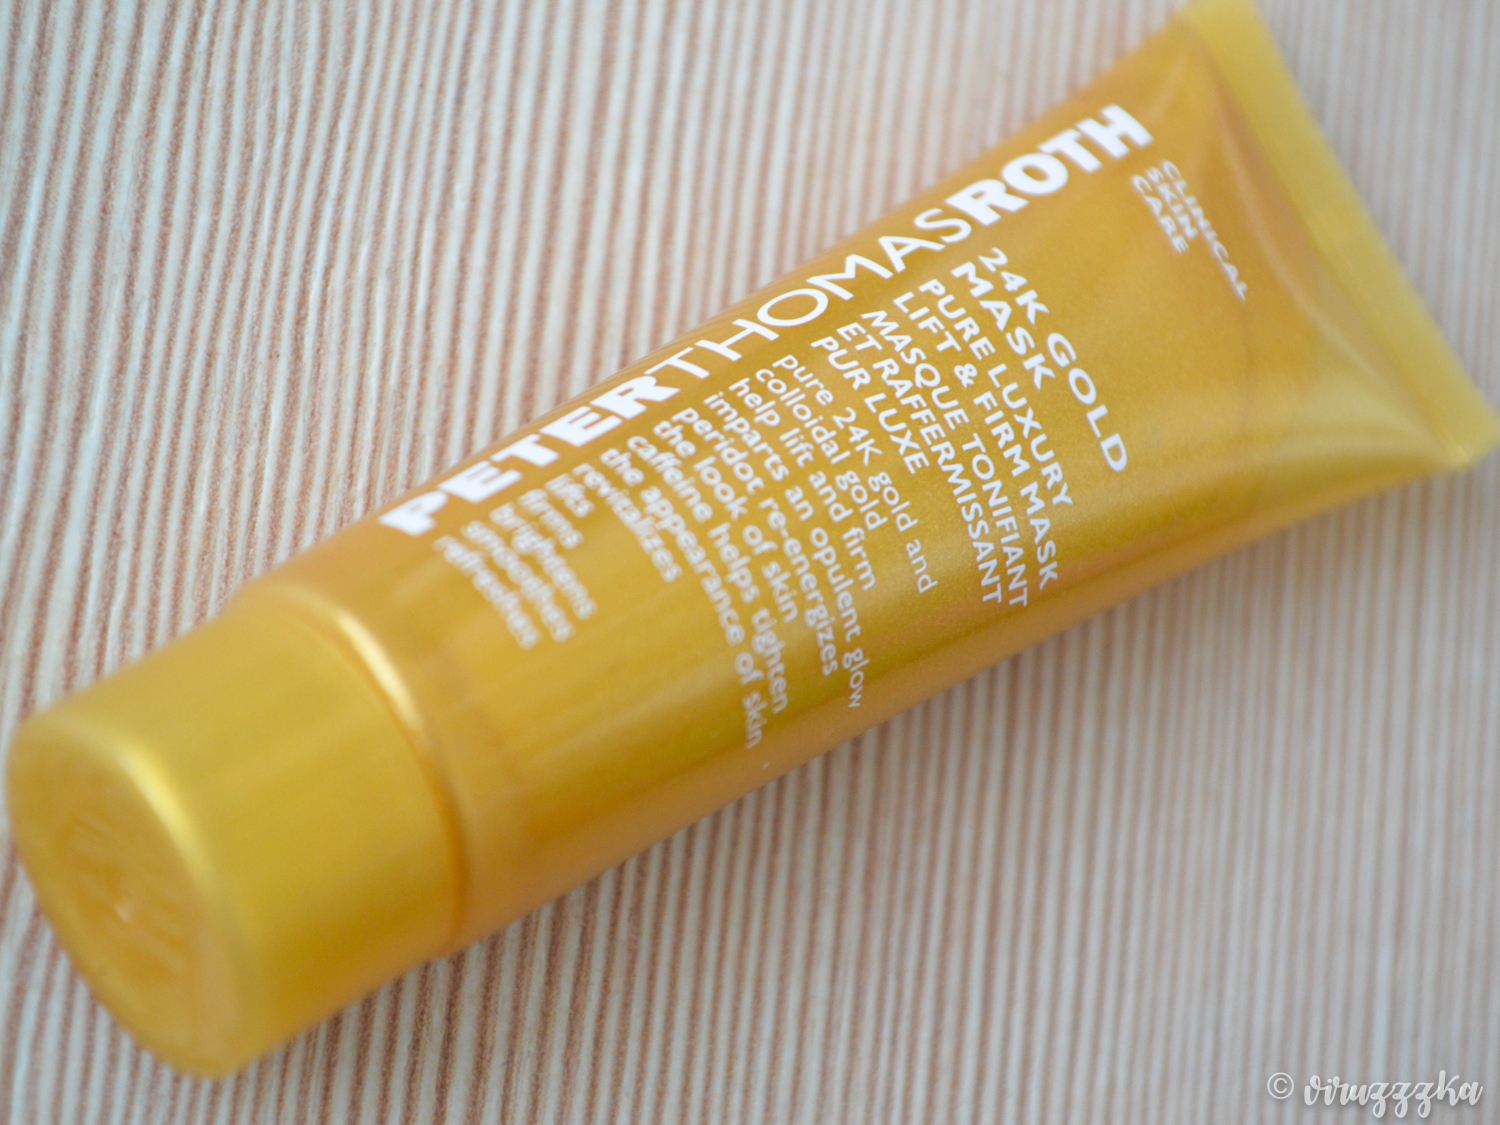 Peter Thomas Roth 24K Gold Mask Pure Luxury Lift & Firm Review